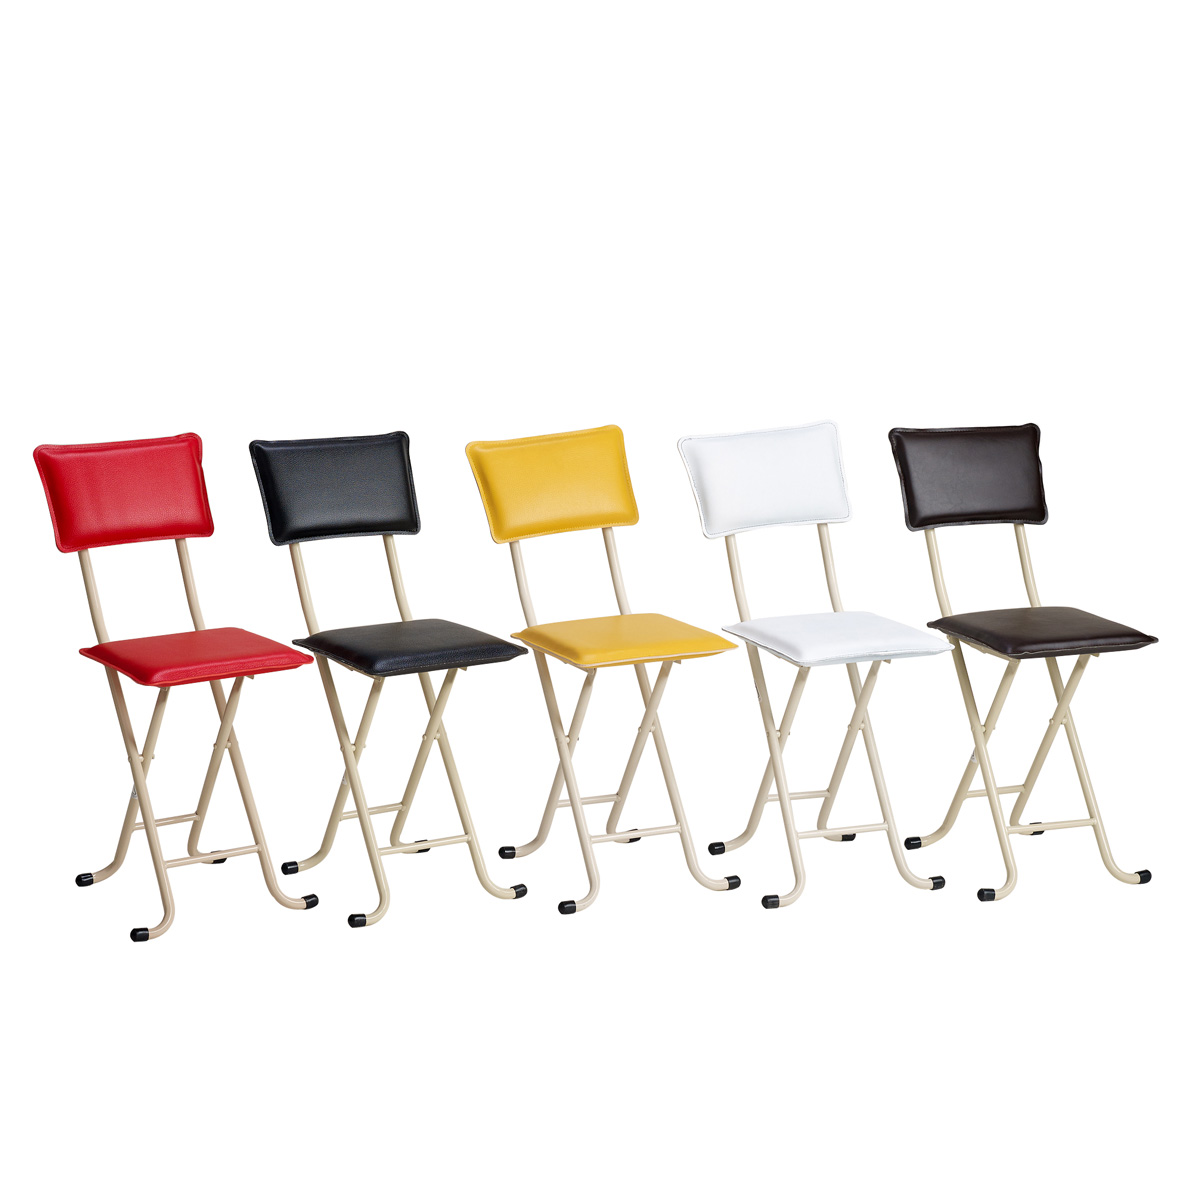 Terrific Amount Of Product Made In Compact Lightweight Folding Chair Folding Chair Steel 78 Width 34 8 Depths 34 8Cm Finished Product Deluxe Chair Dx 80 With Camellatalisay Diy Chair Ideas Camellatalisaycom